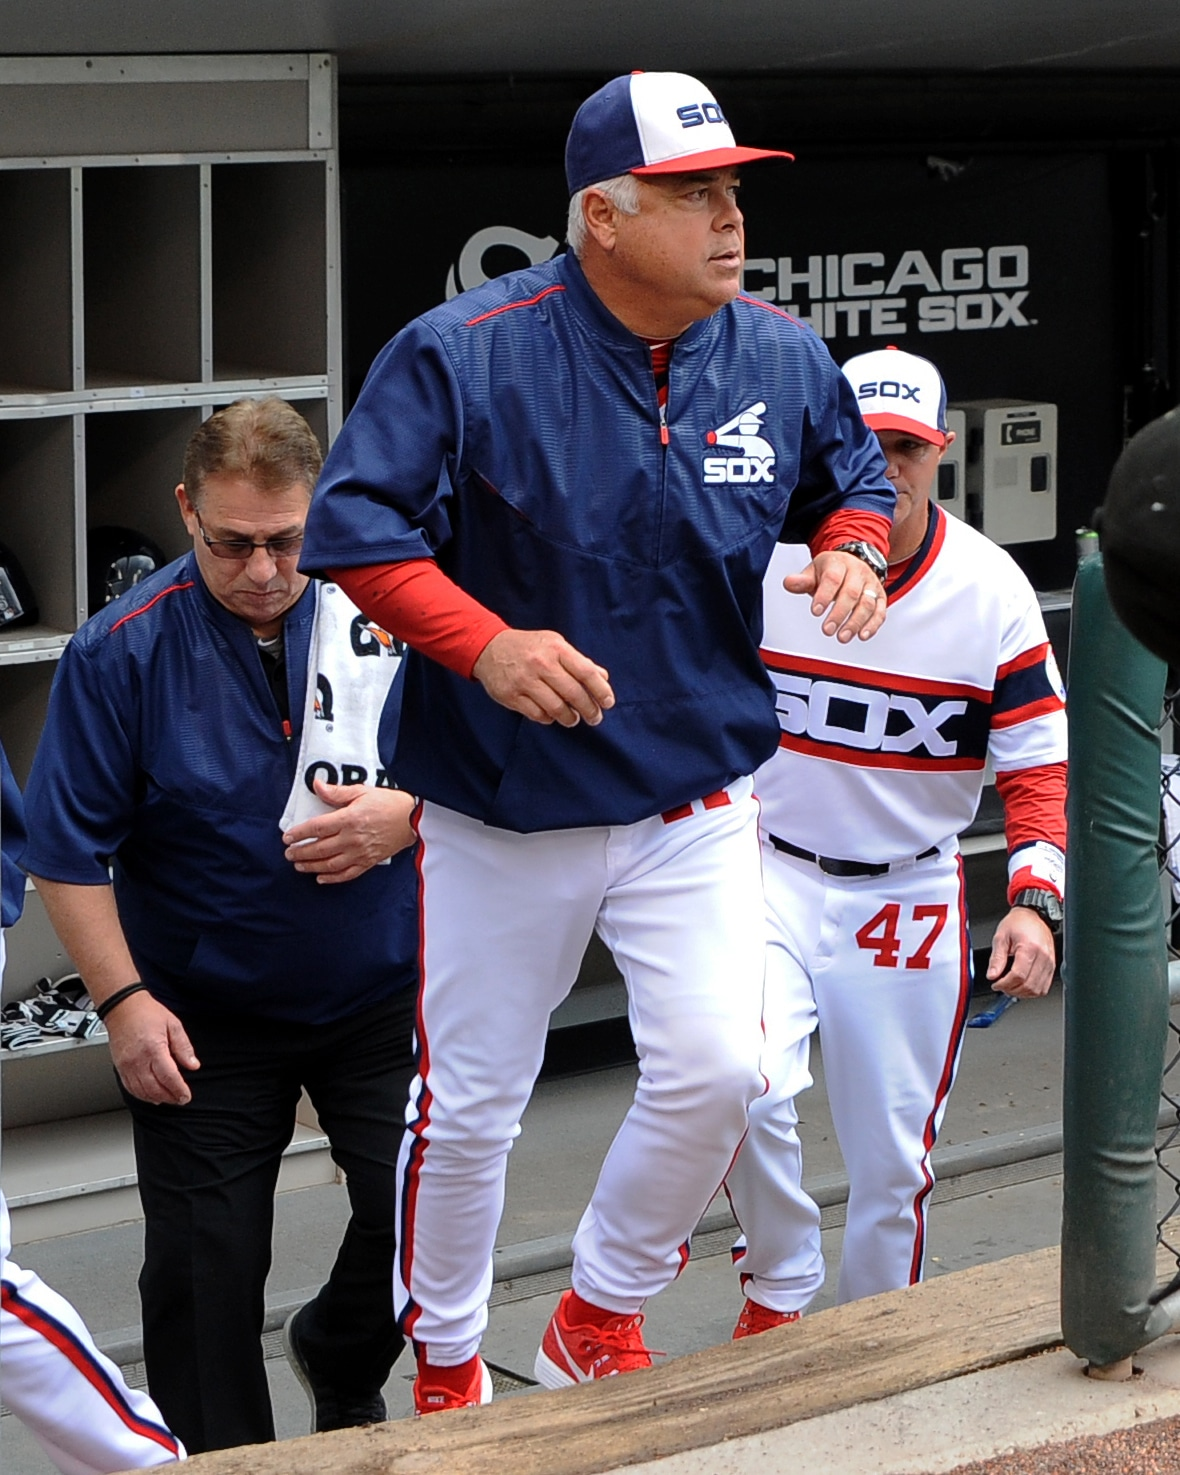 White Sox coach Rick Renteria will likely keep things low-key and delicious this spring training. (Patrick Gorski/USA TODAY Sports)